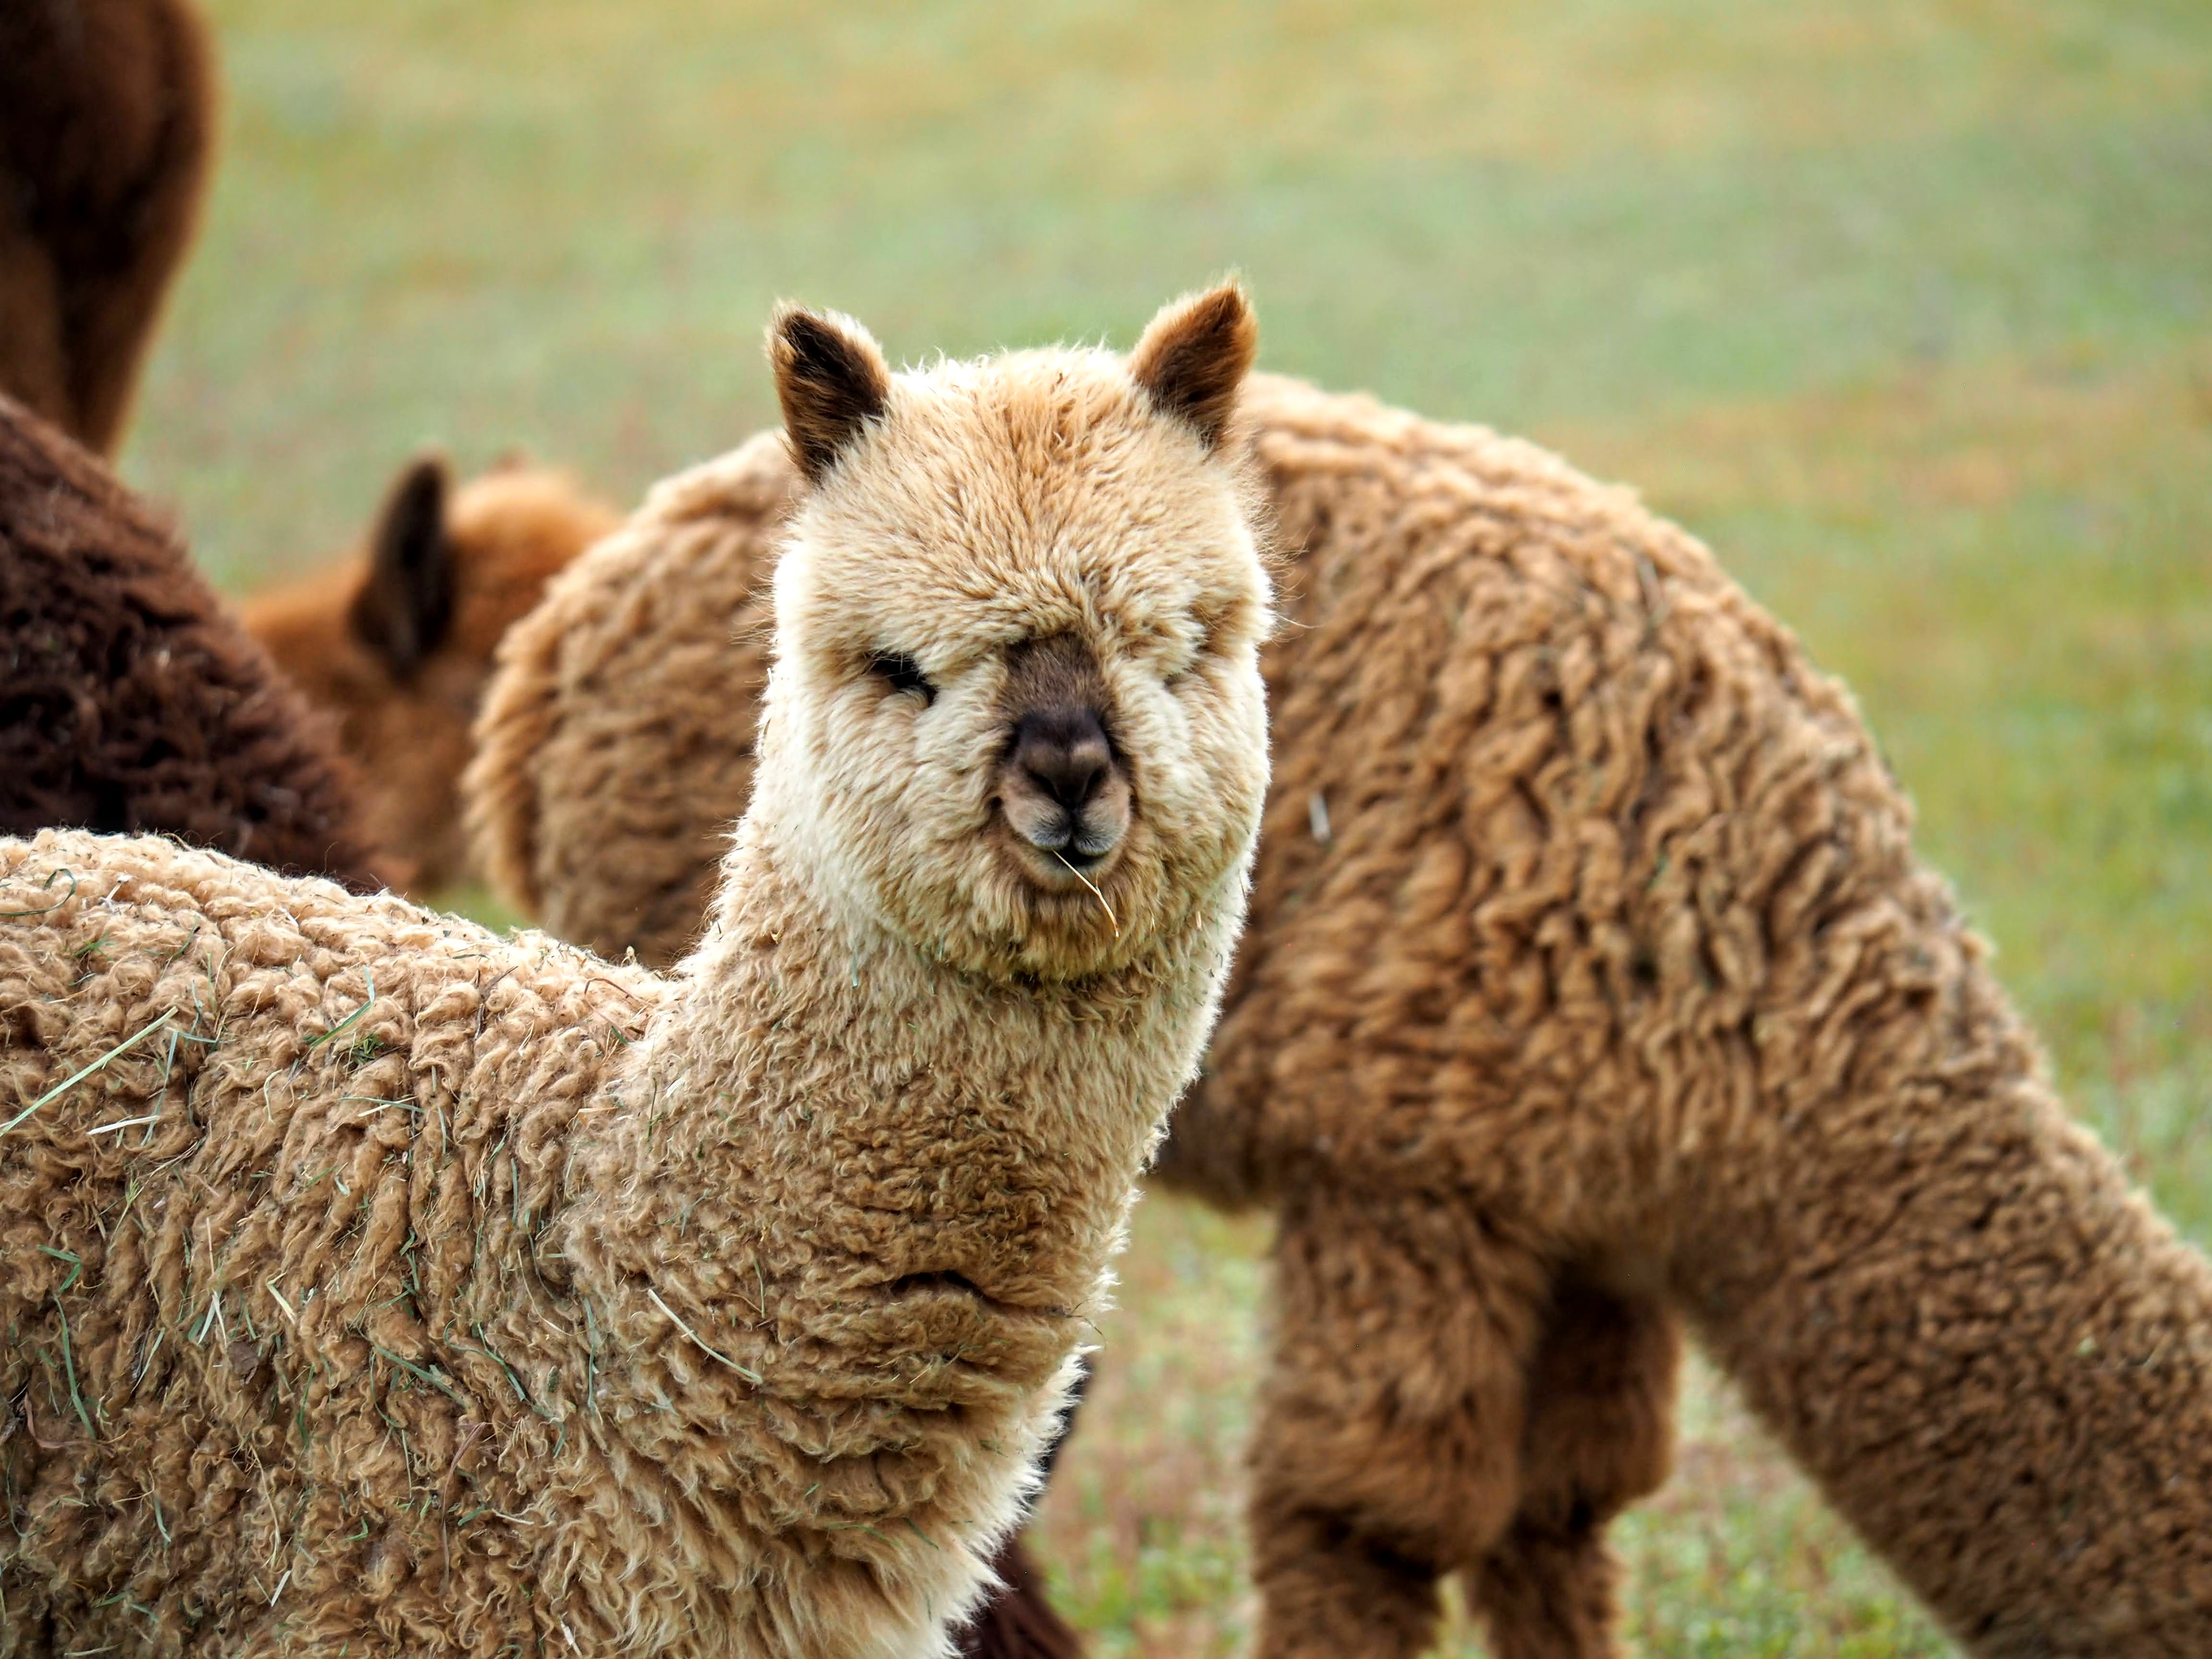 Postcard from Alpacas at Lone Ranch